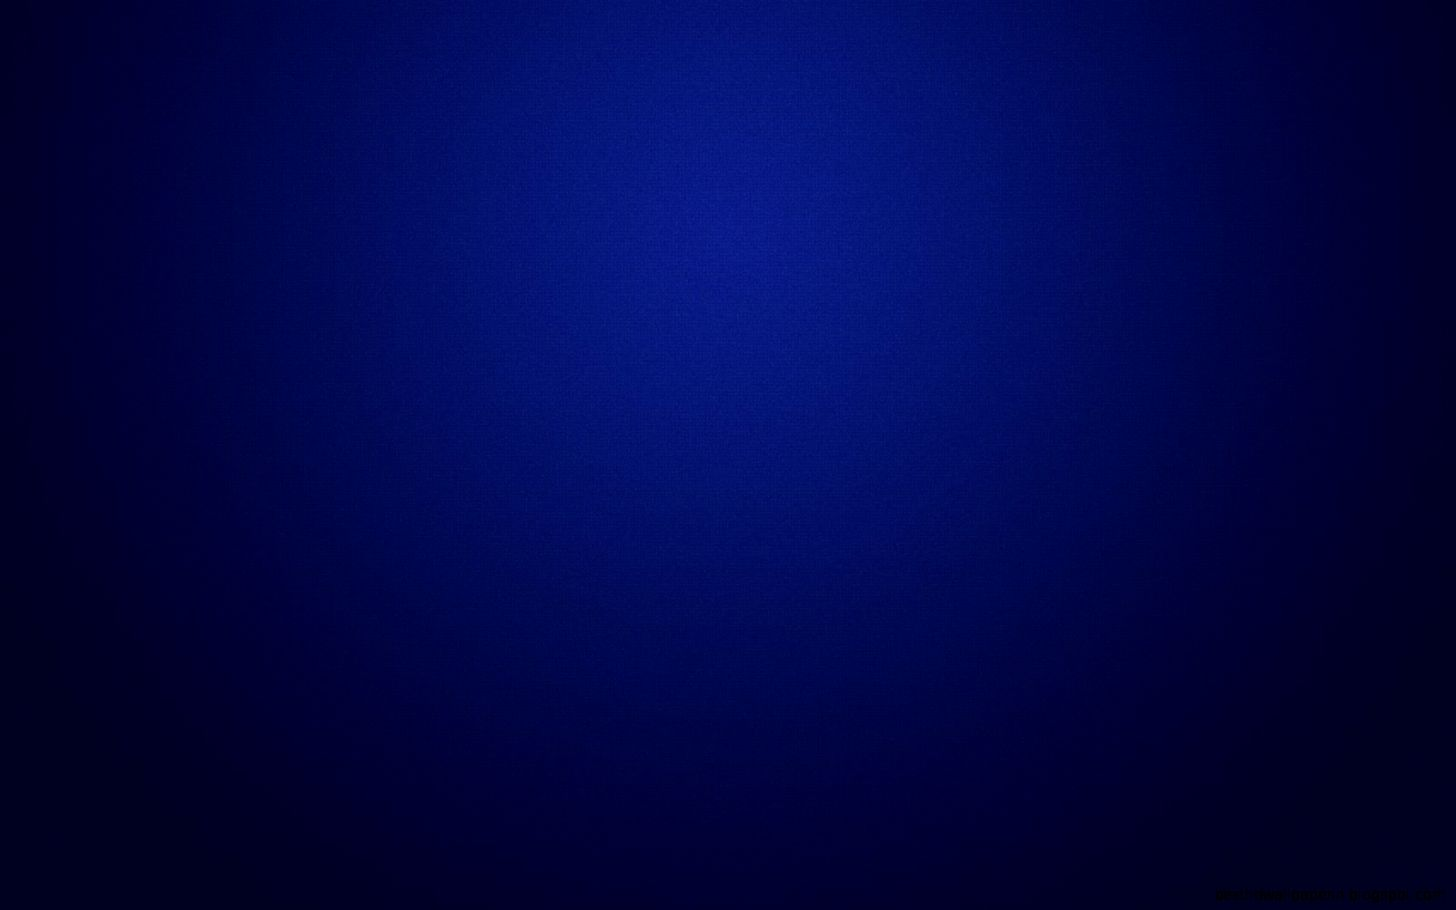 Blue Background For Basic | Best HD Wallpapers